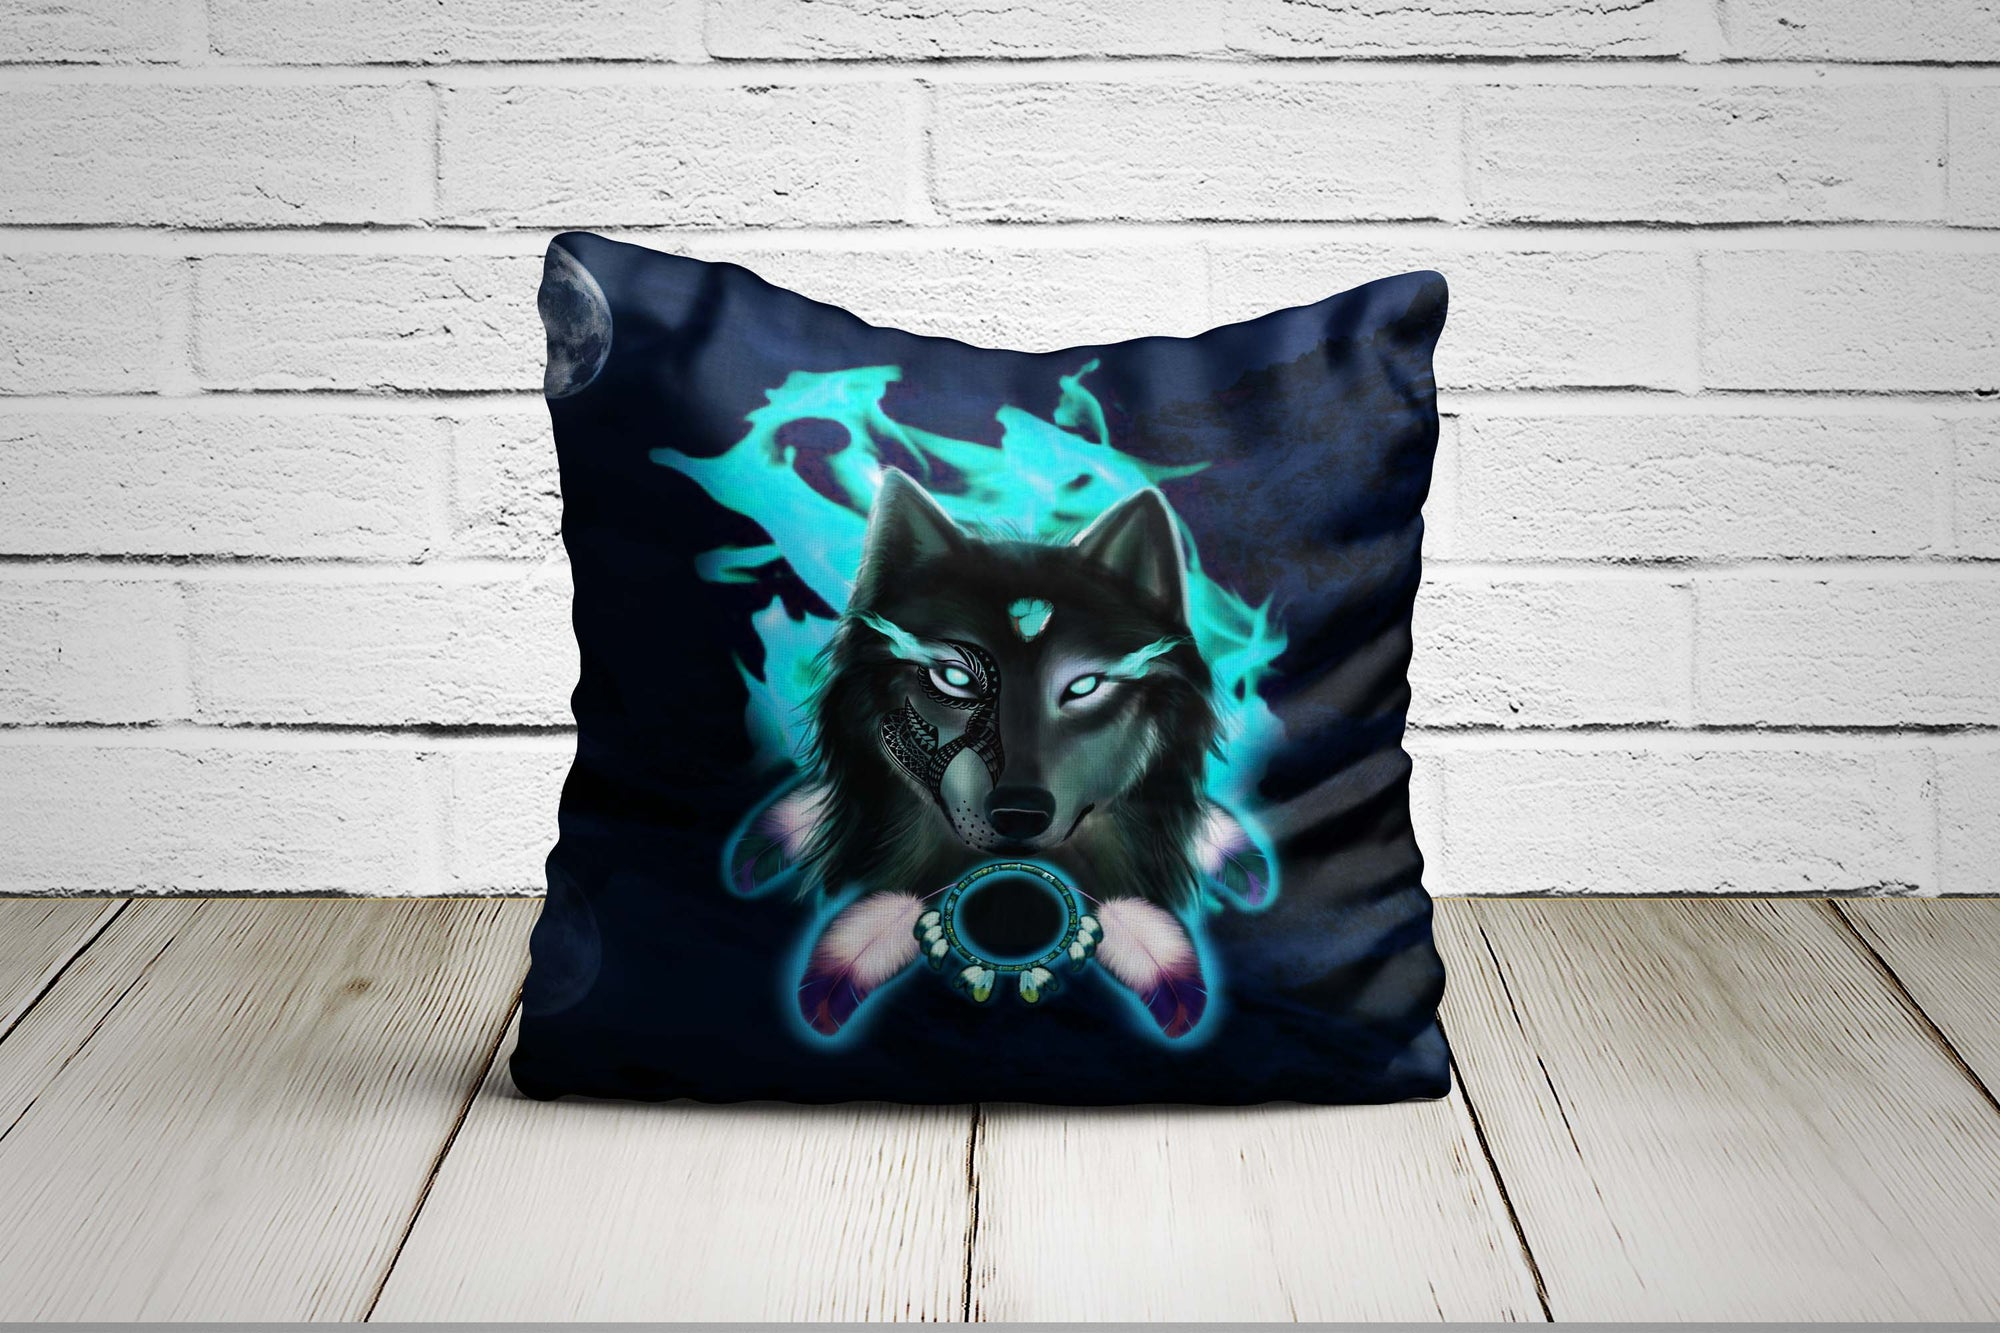 Wakanda Pillow Case